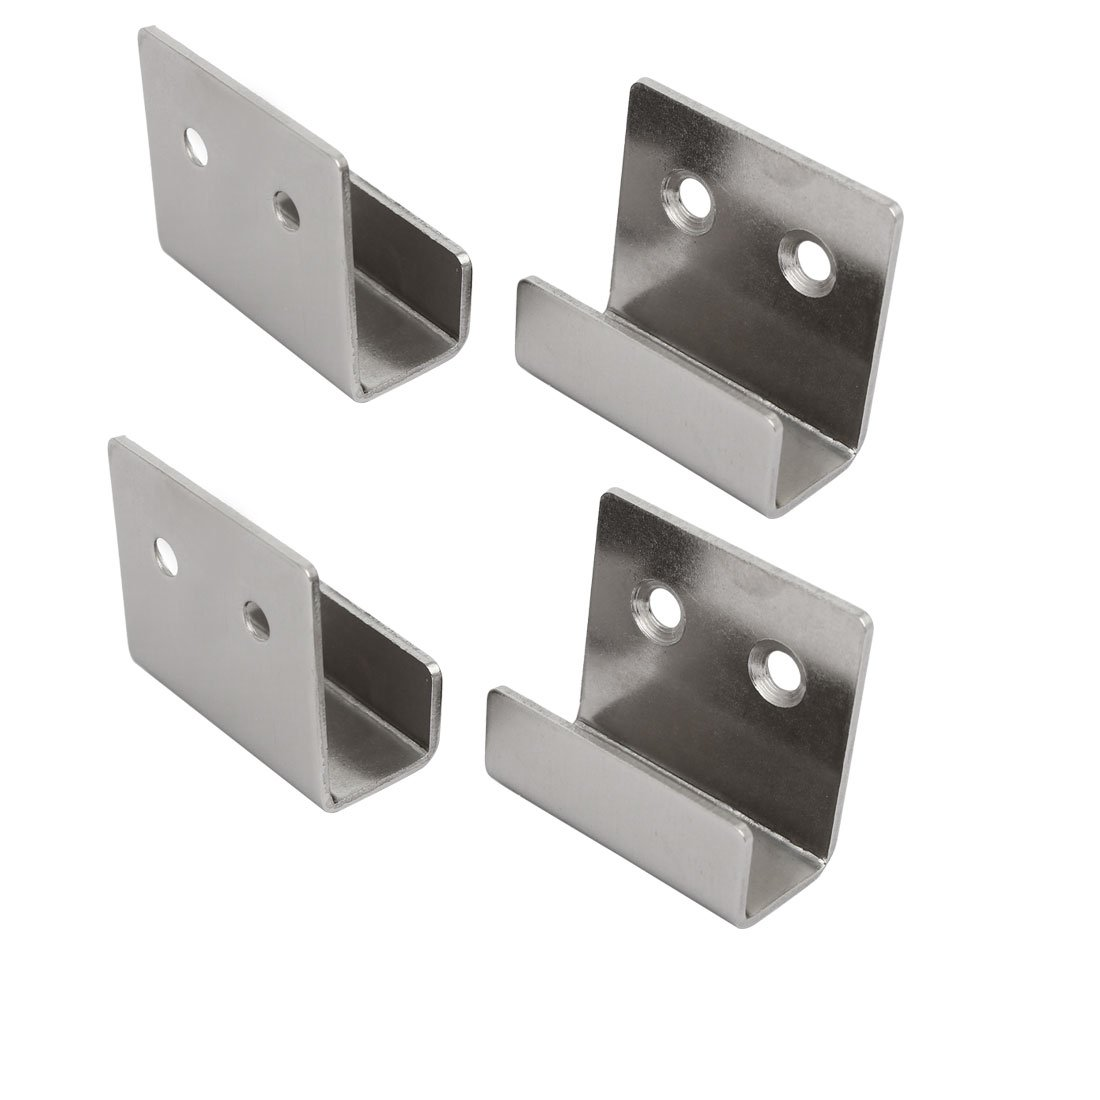 uxcell Tile Display Stainless Steel Wall Hanger Bracket Silver Tone 4pcs